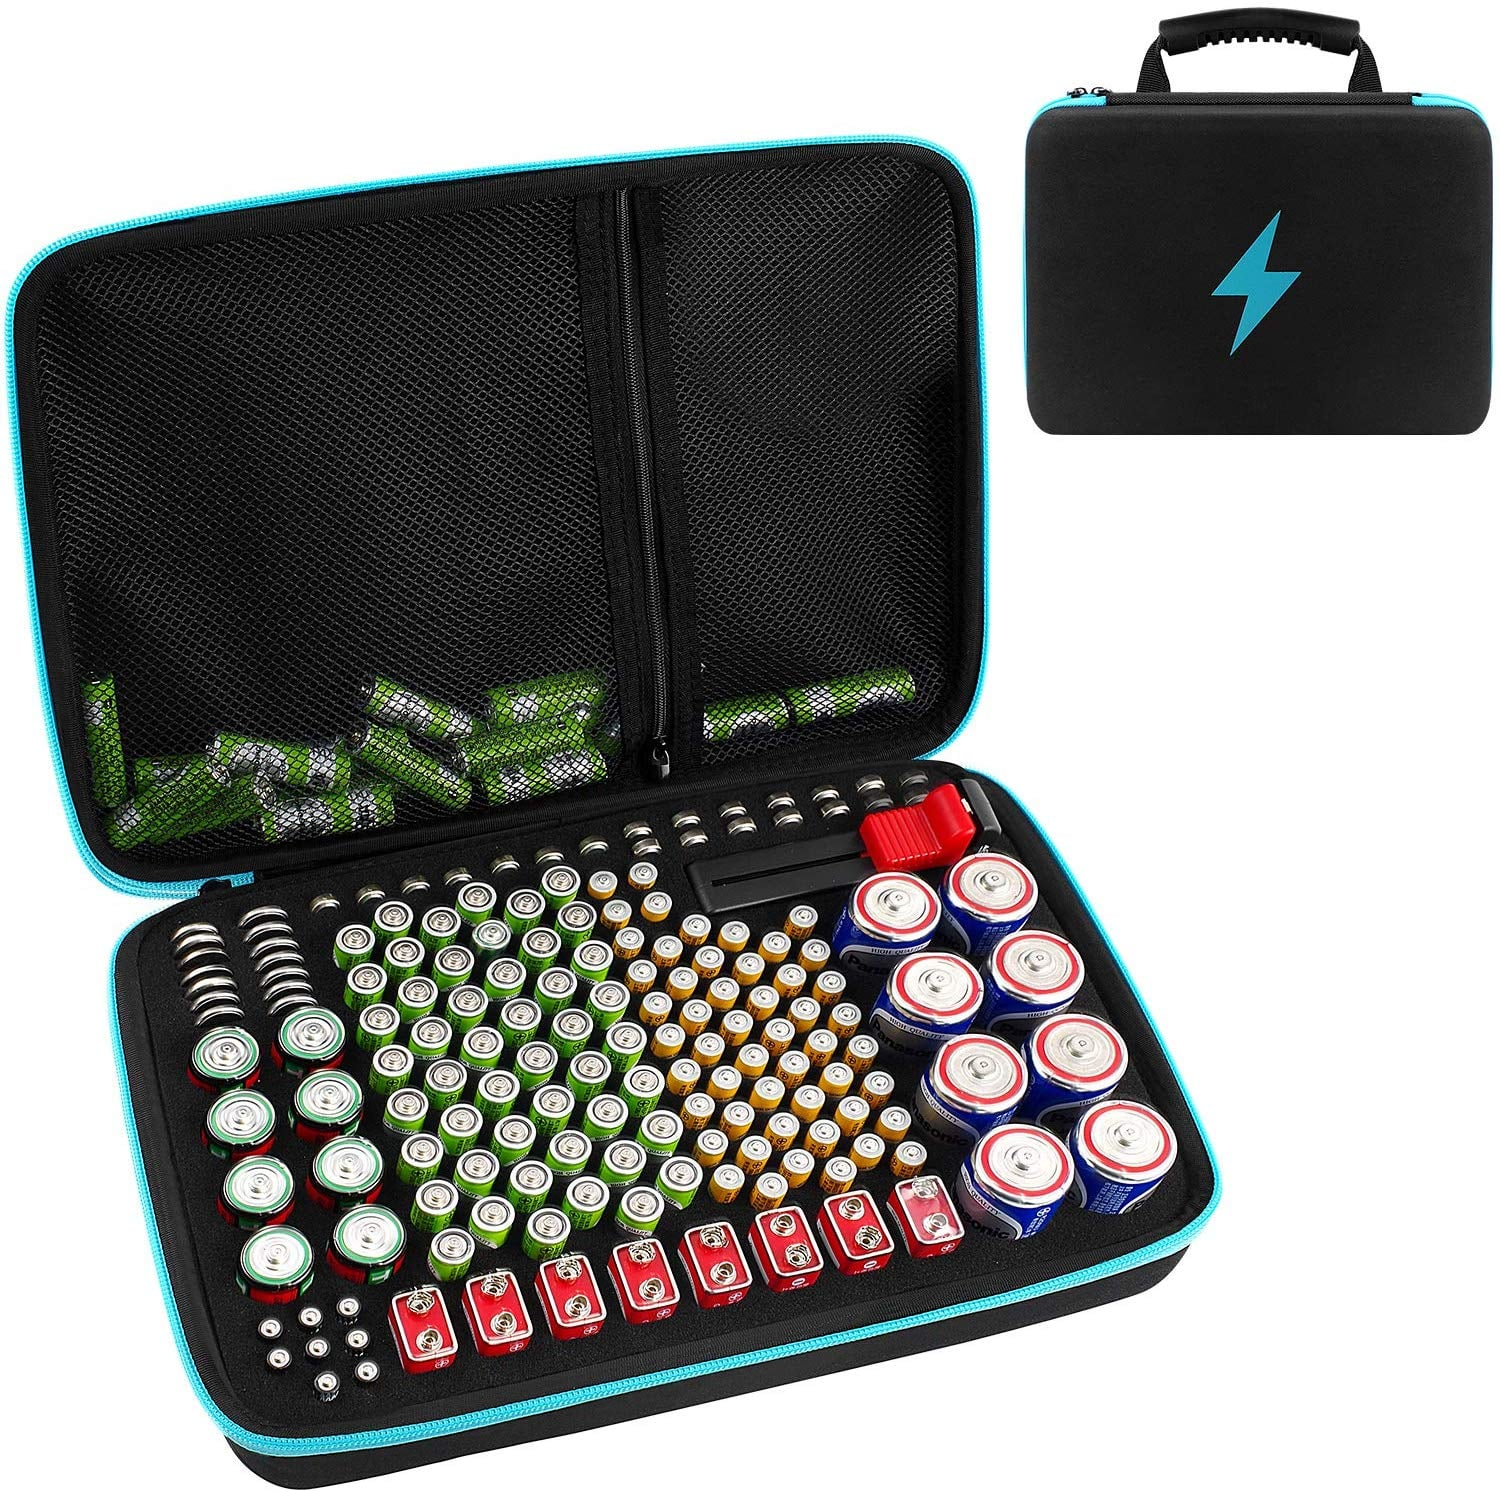 Battery Organizer Storage Box With Battery Tester 25 Genius And Actually Useful Gifts For Your Most Organized Friend Popsugar Home Photo 10